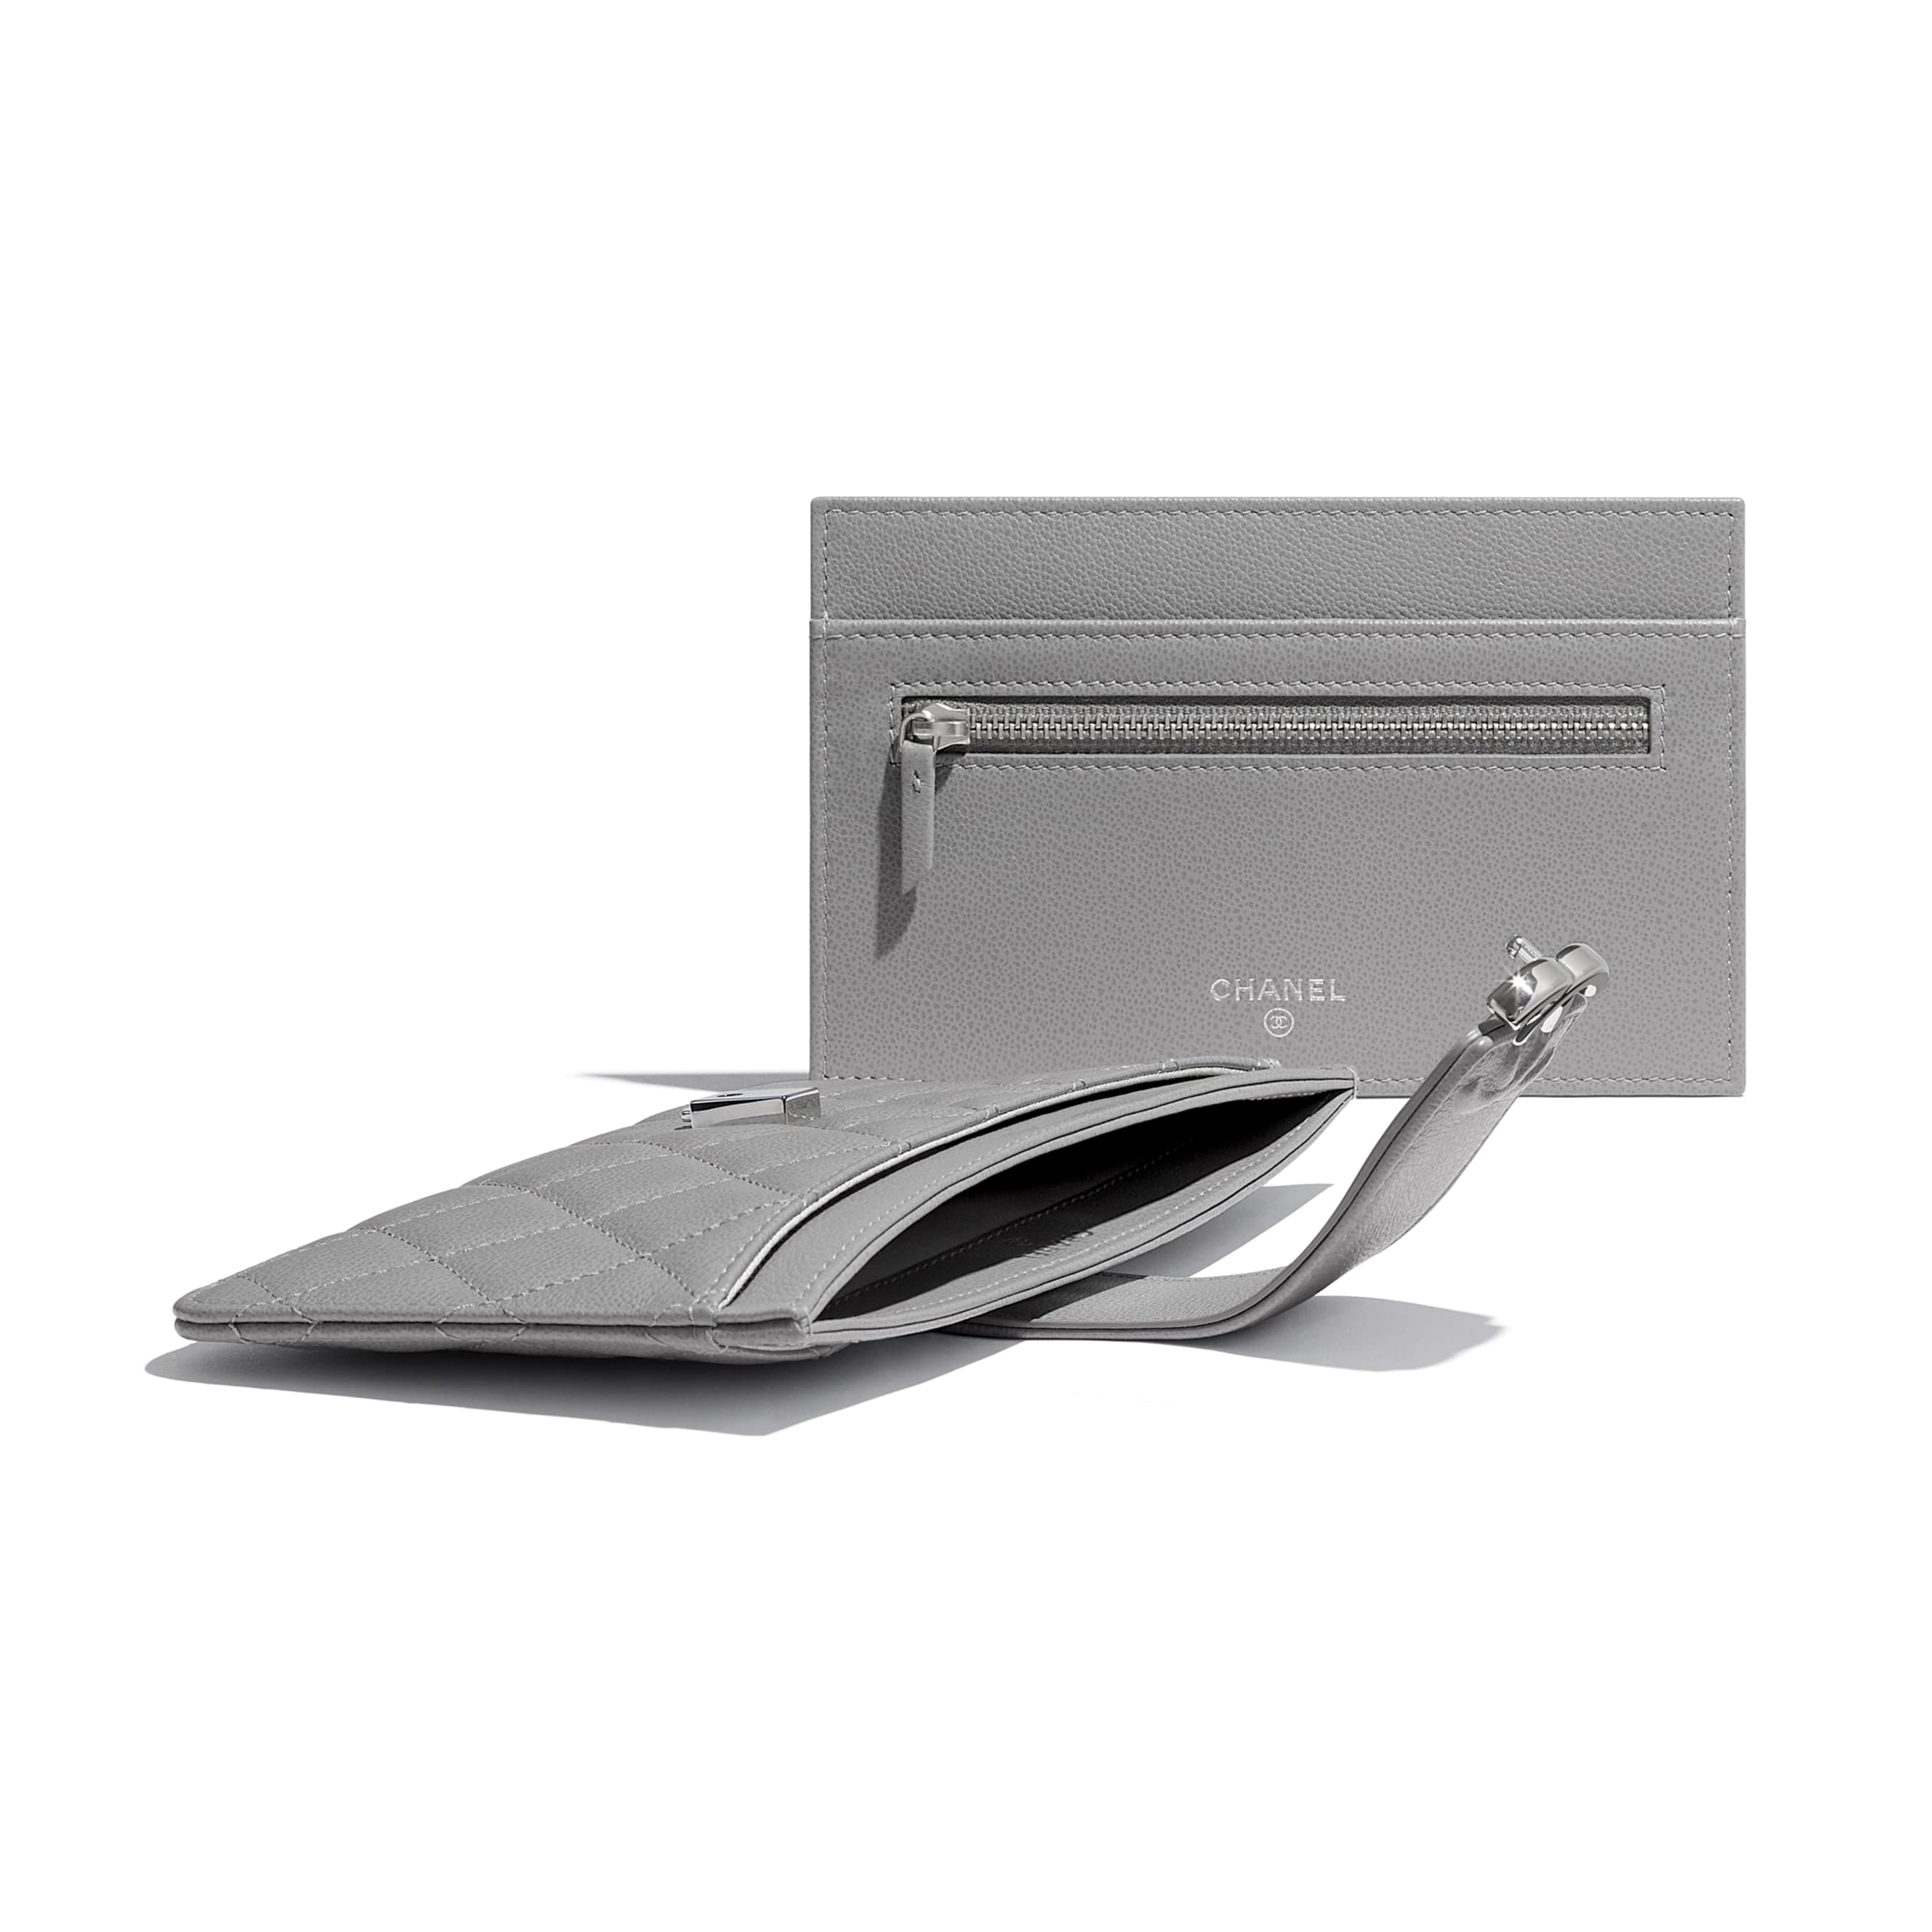 Pouch - Gray - Grained Calfskin & Silver-Tone Metal - CHANEL - Extra view - see standard sized version